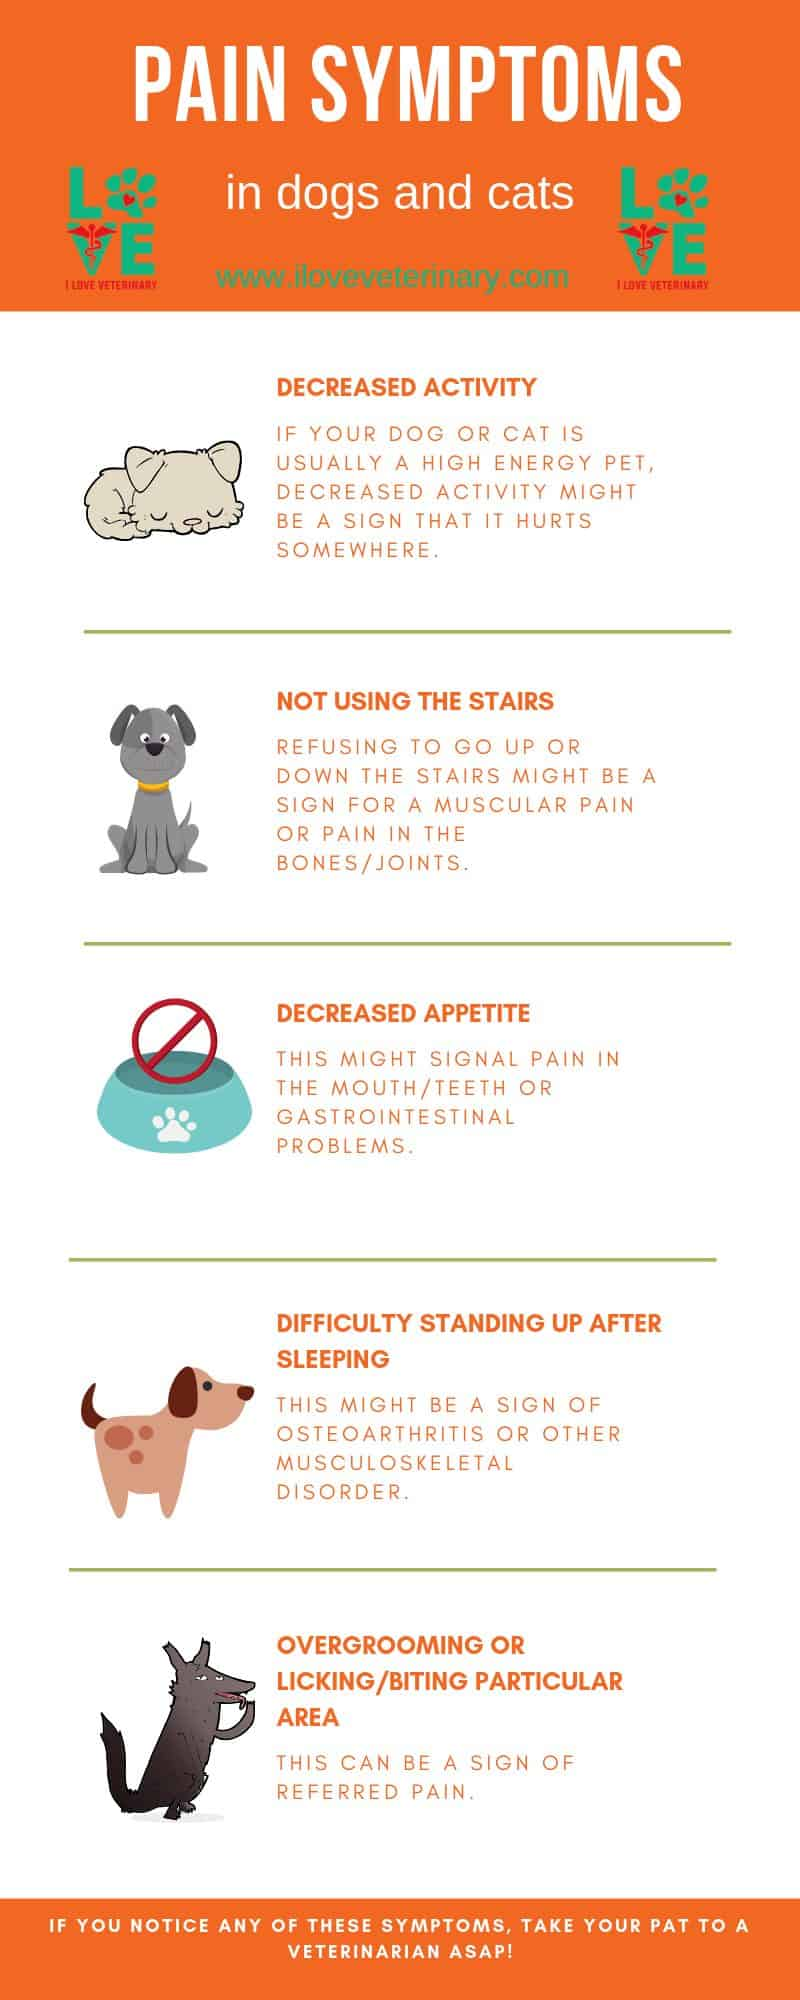 pain symptoms in dogs and cats infographic